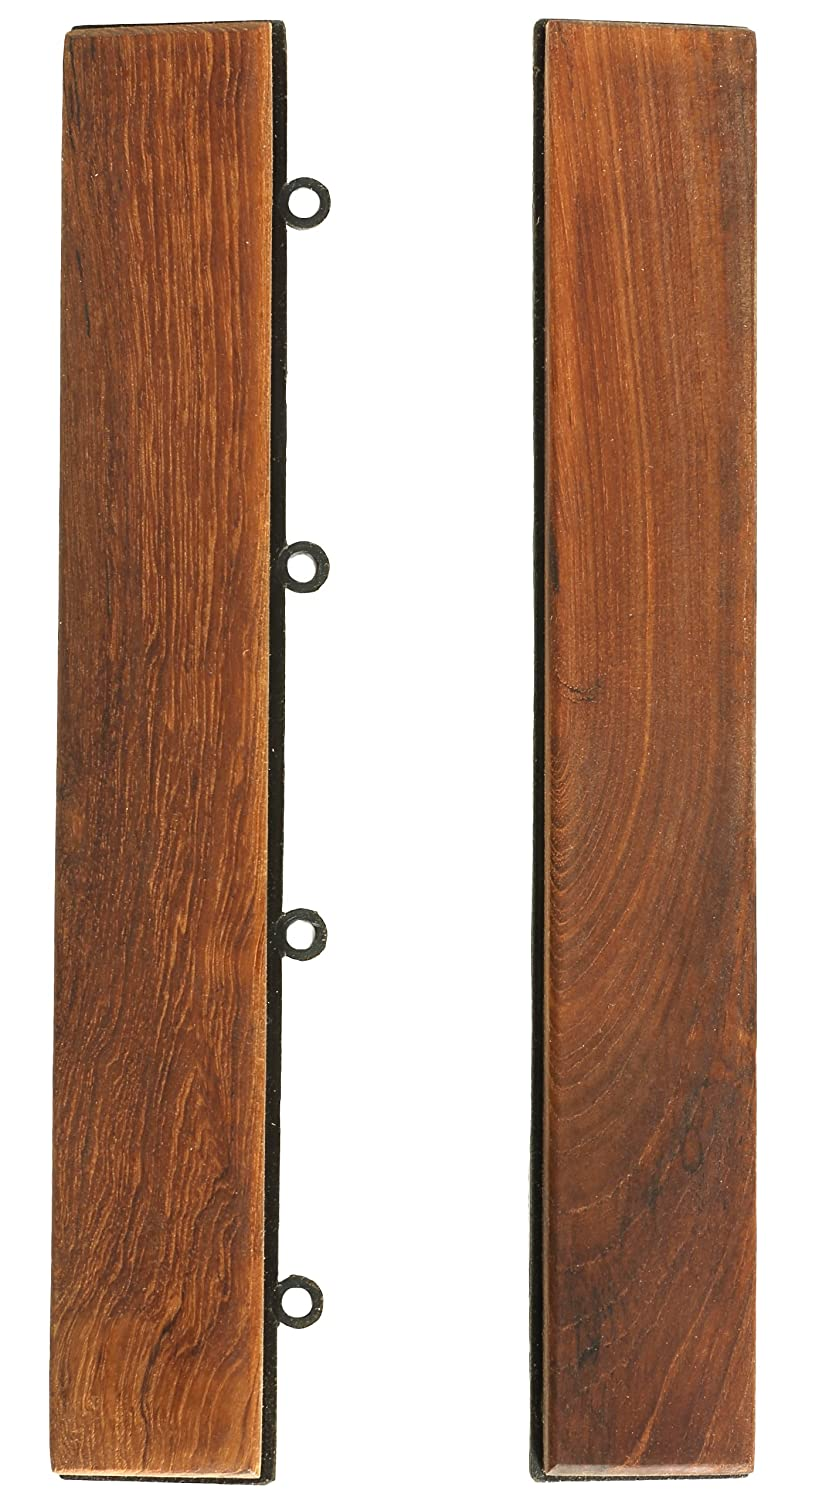 Teak Wood Pieces ~ Bare decor ez floor end trim piece interlocking flooring